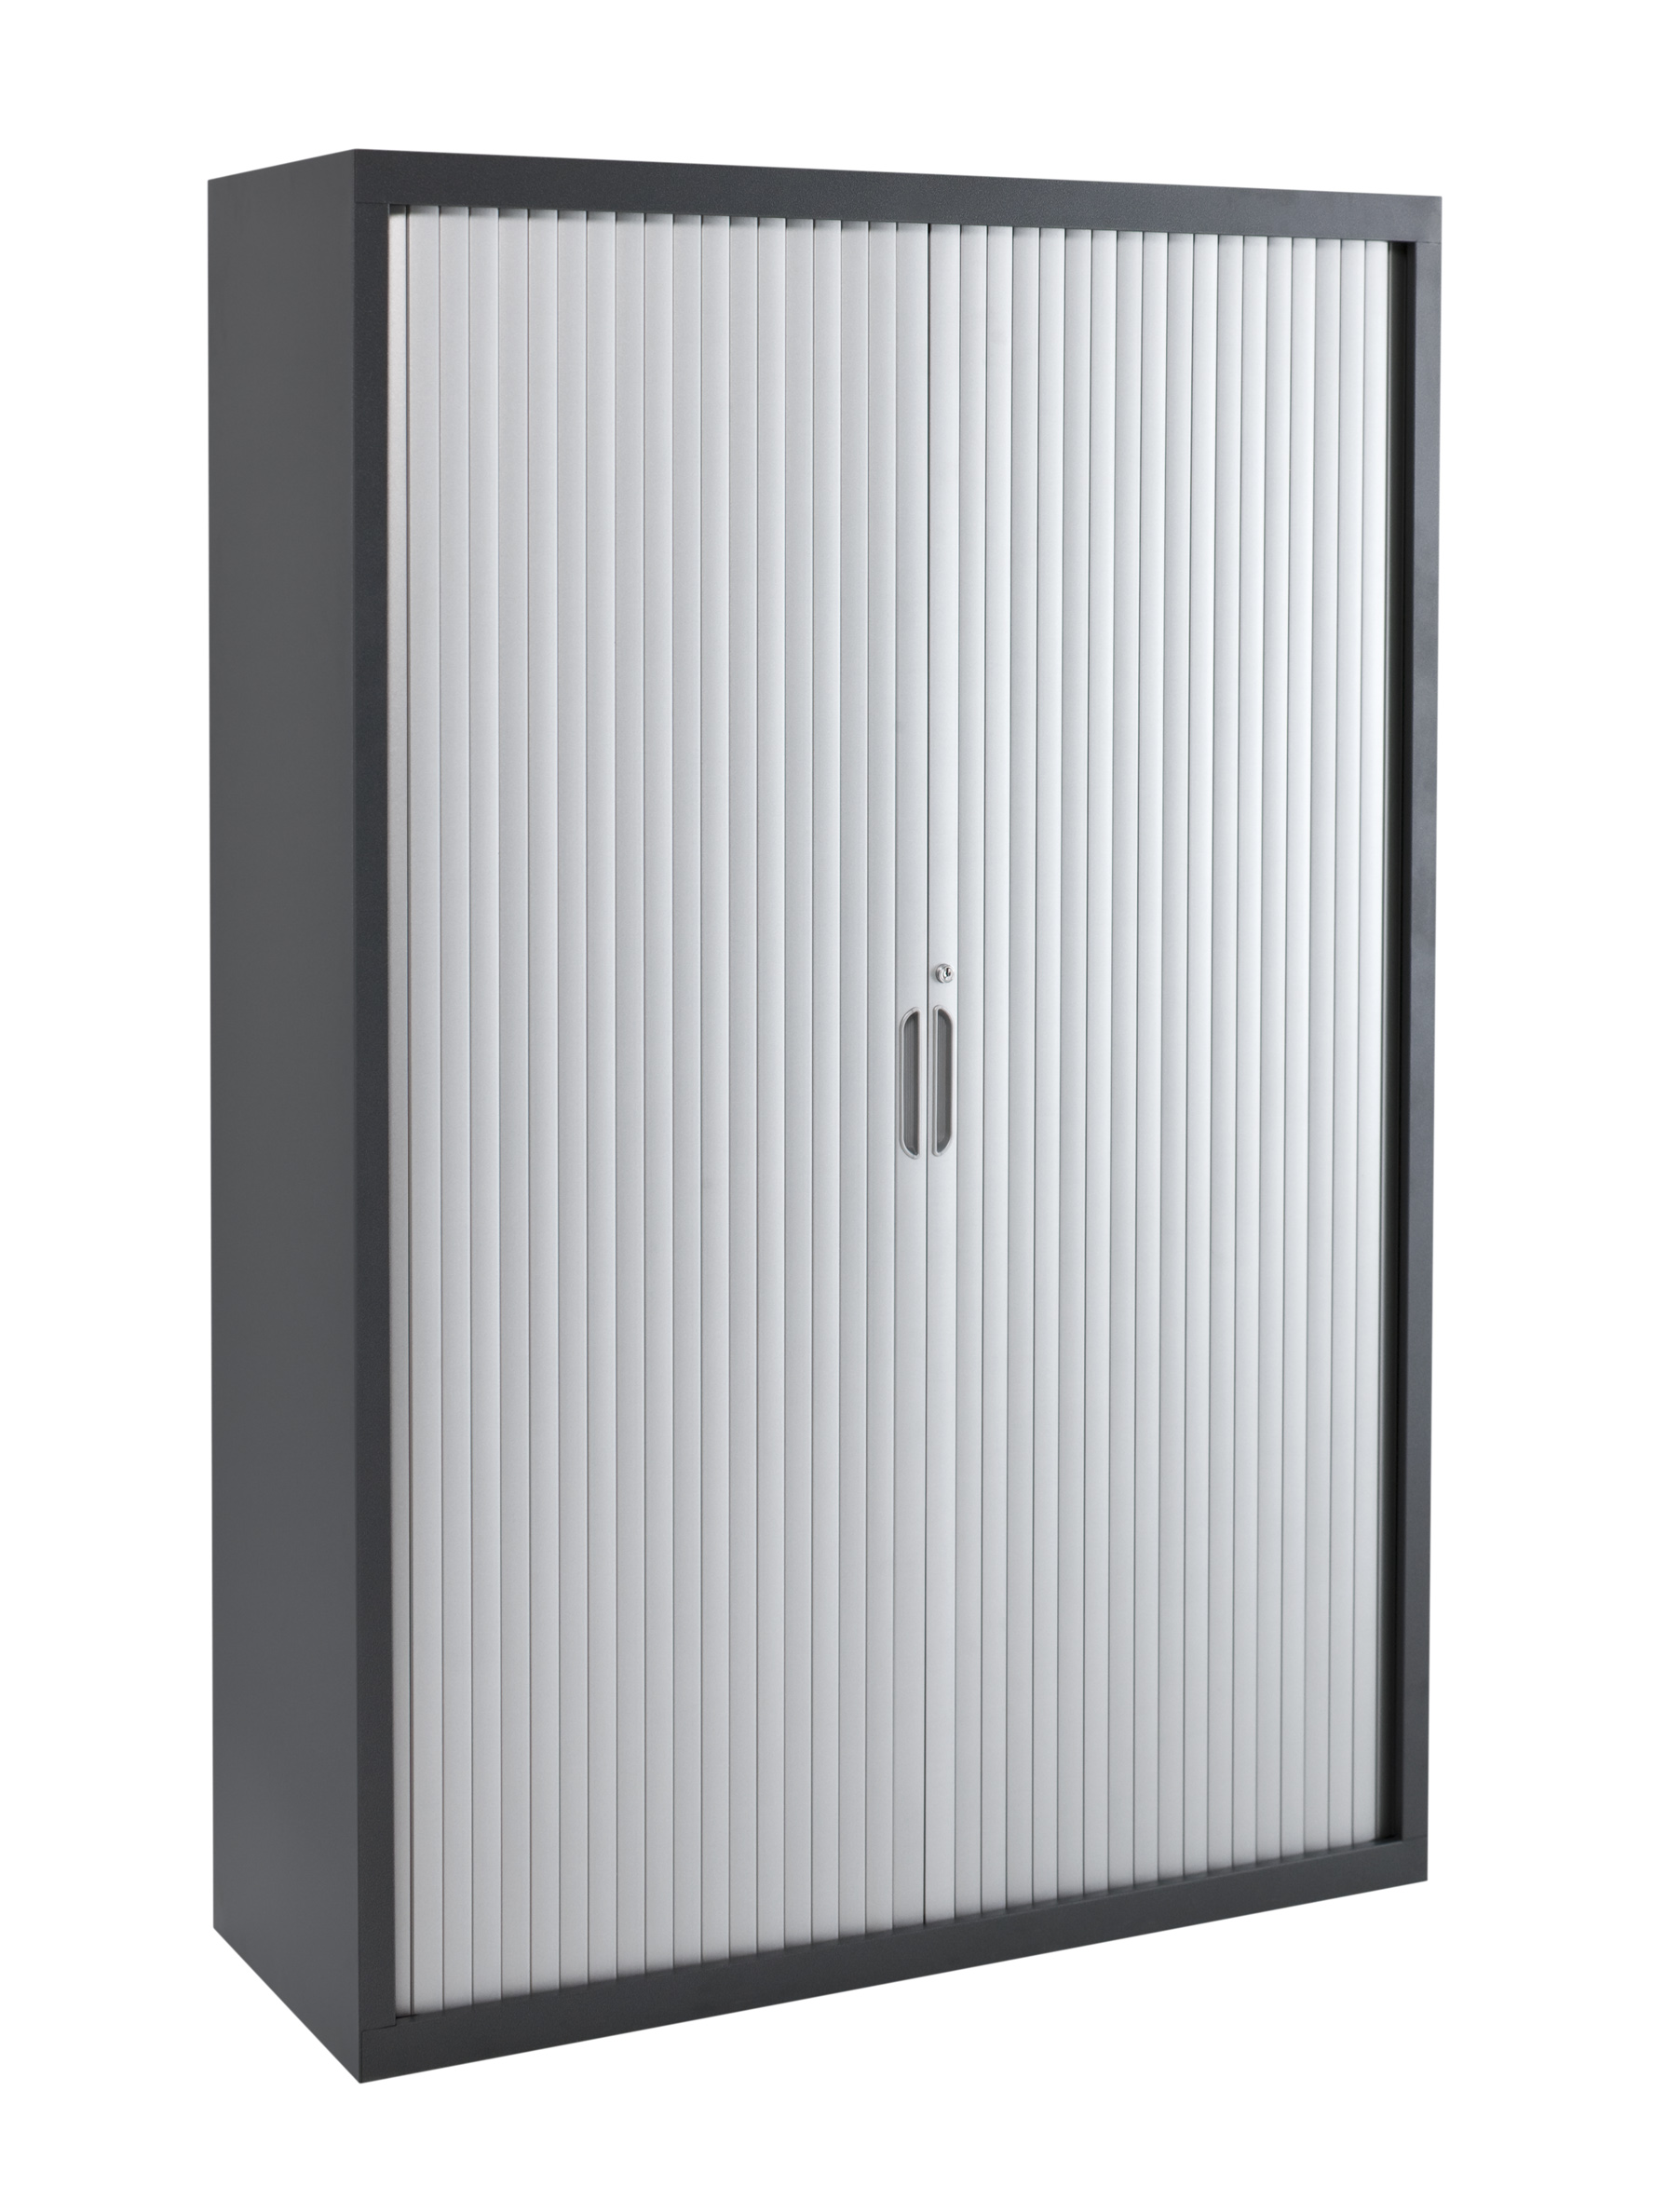 Tambour Door Cabinets Statewide Office Direct Qld